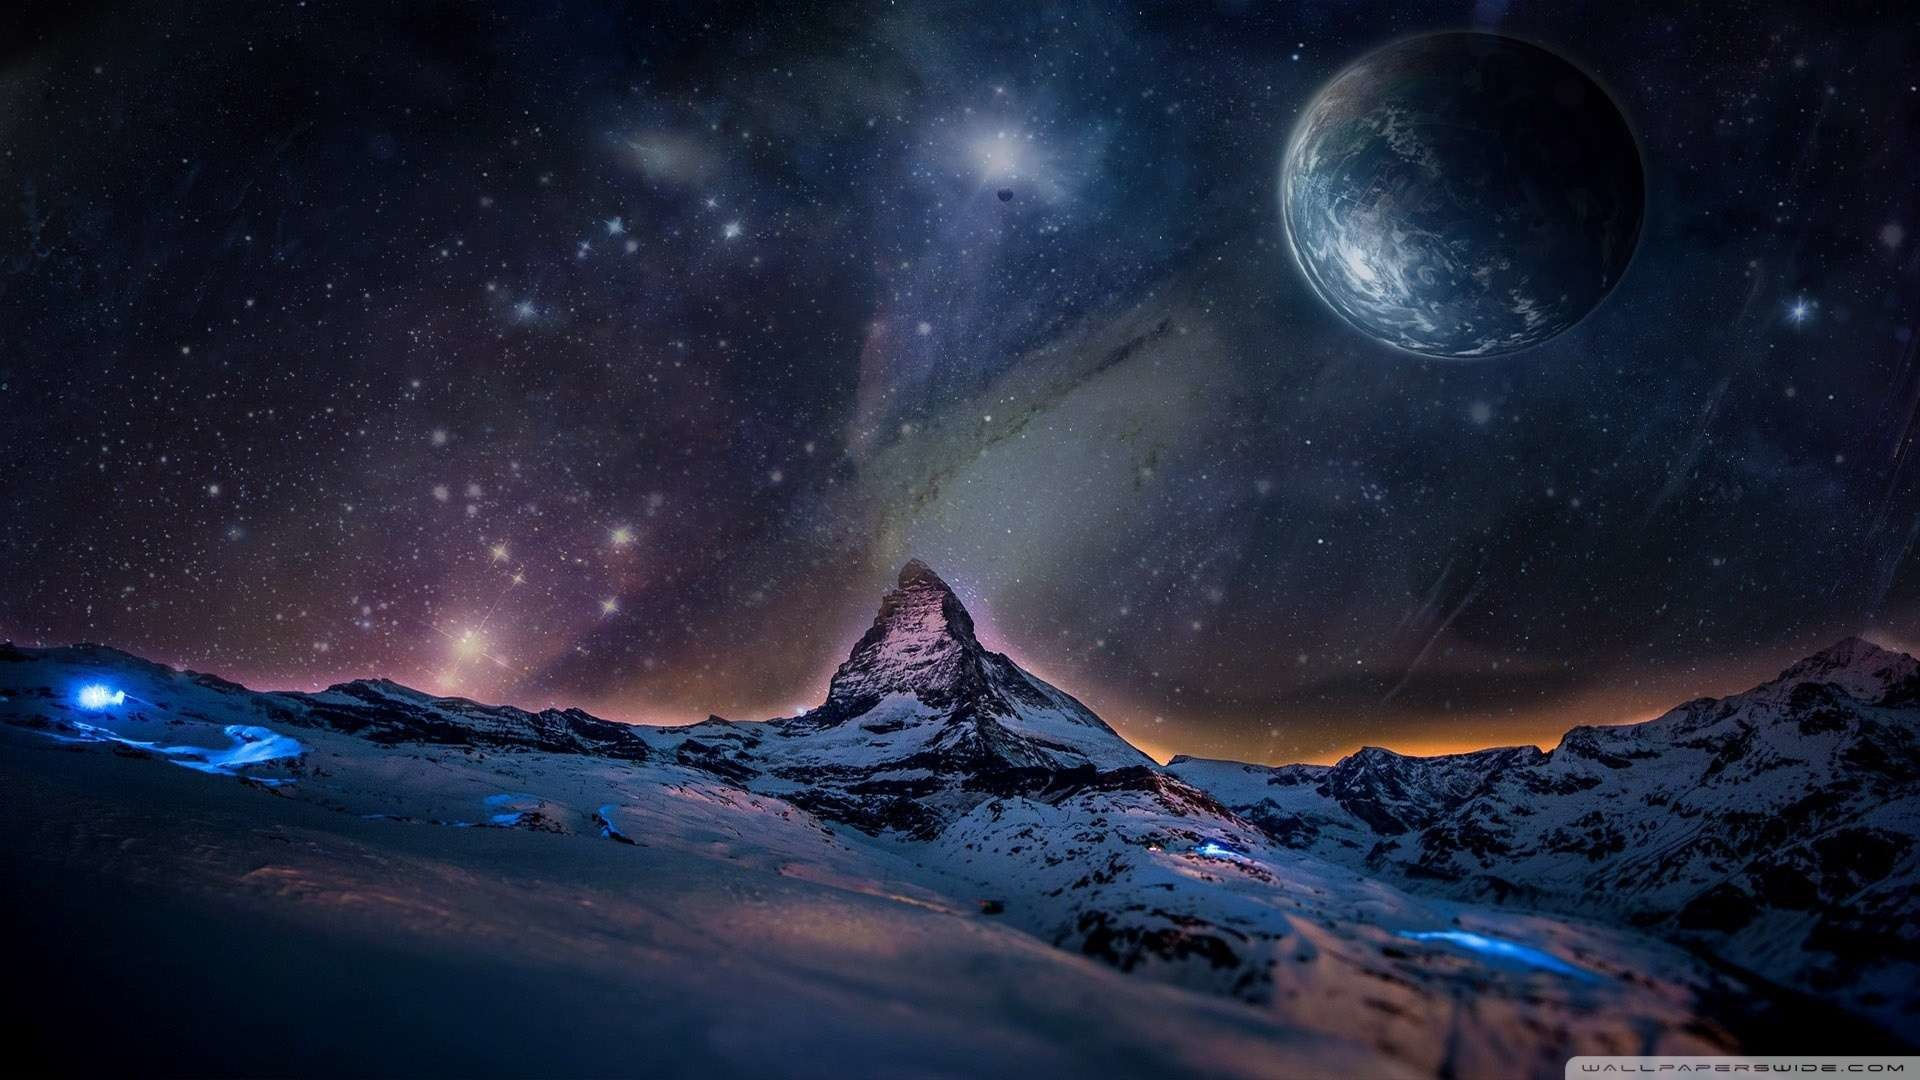 space hd wallpapers 1080p ·①